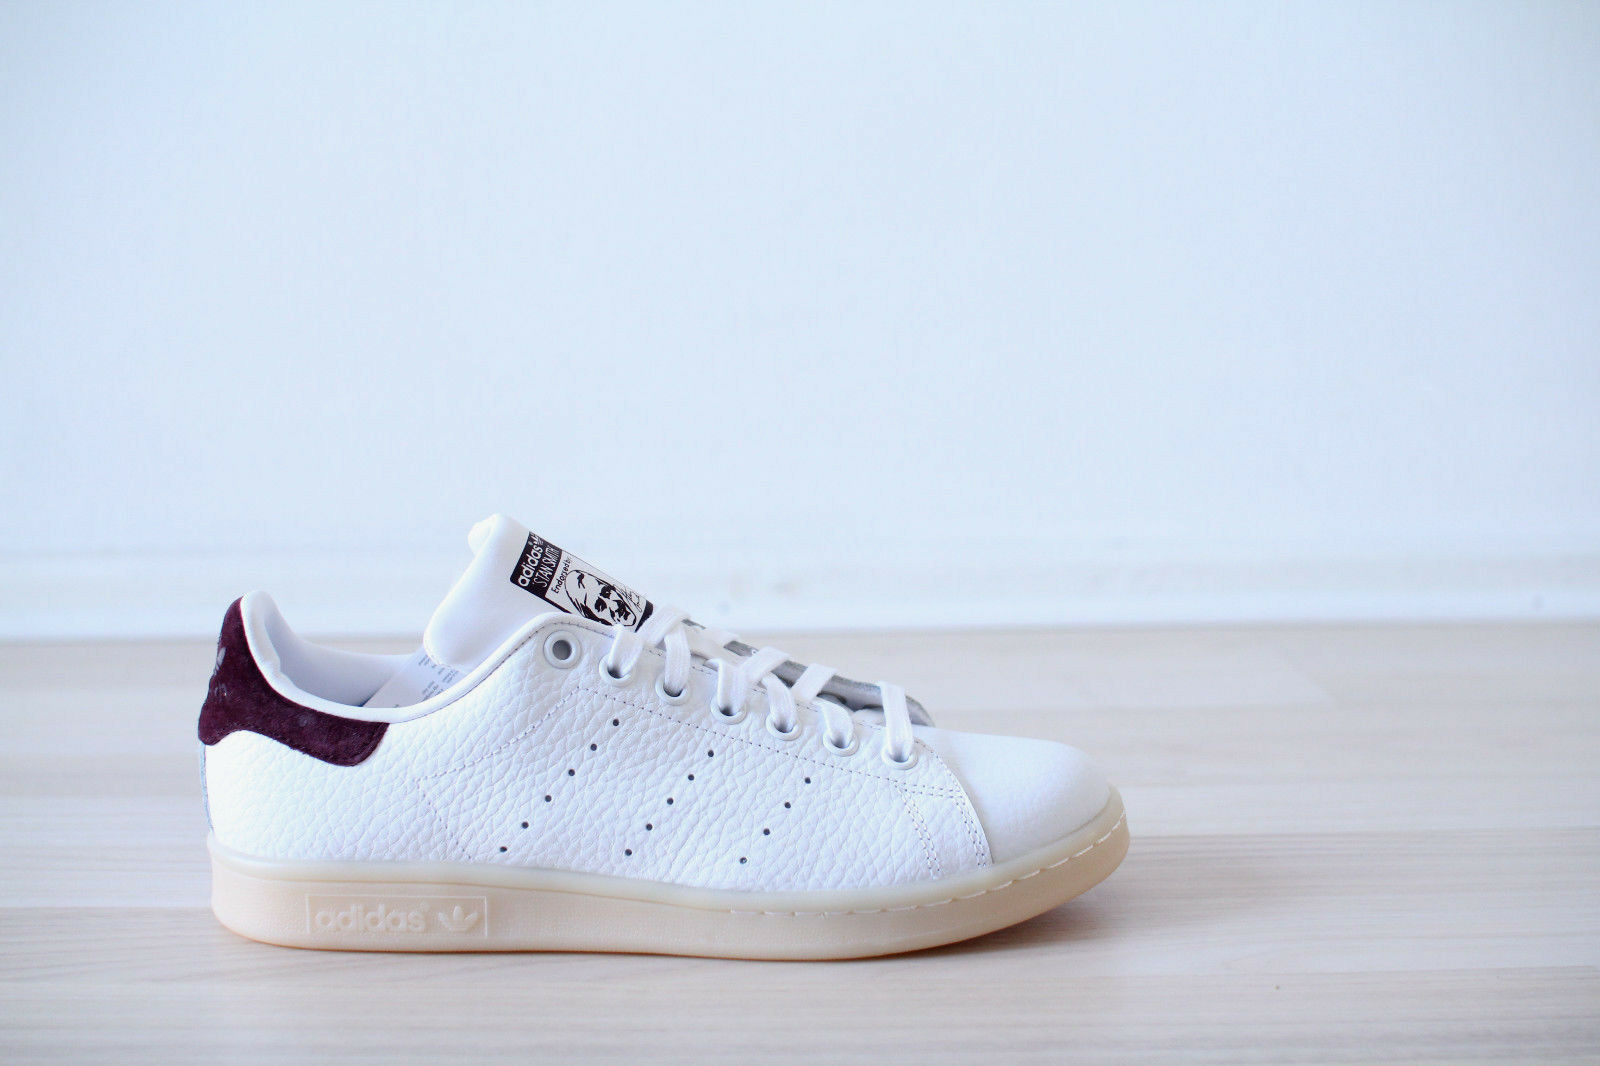 ADIDAS STAN SMITH PELLE BIANCO ROSSO TG. 38,39,40 NUOVO & OVP bz0487